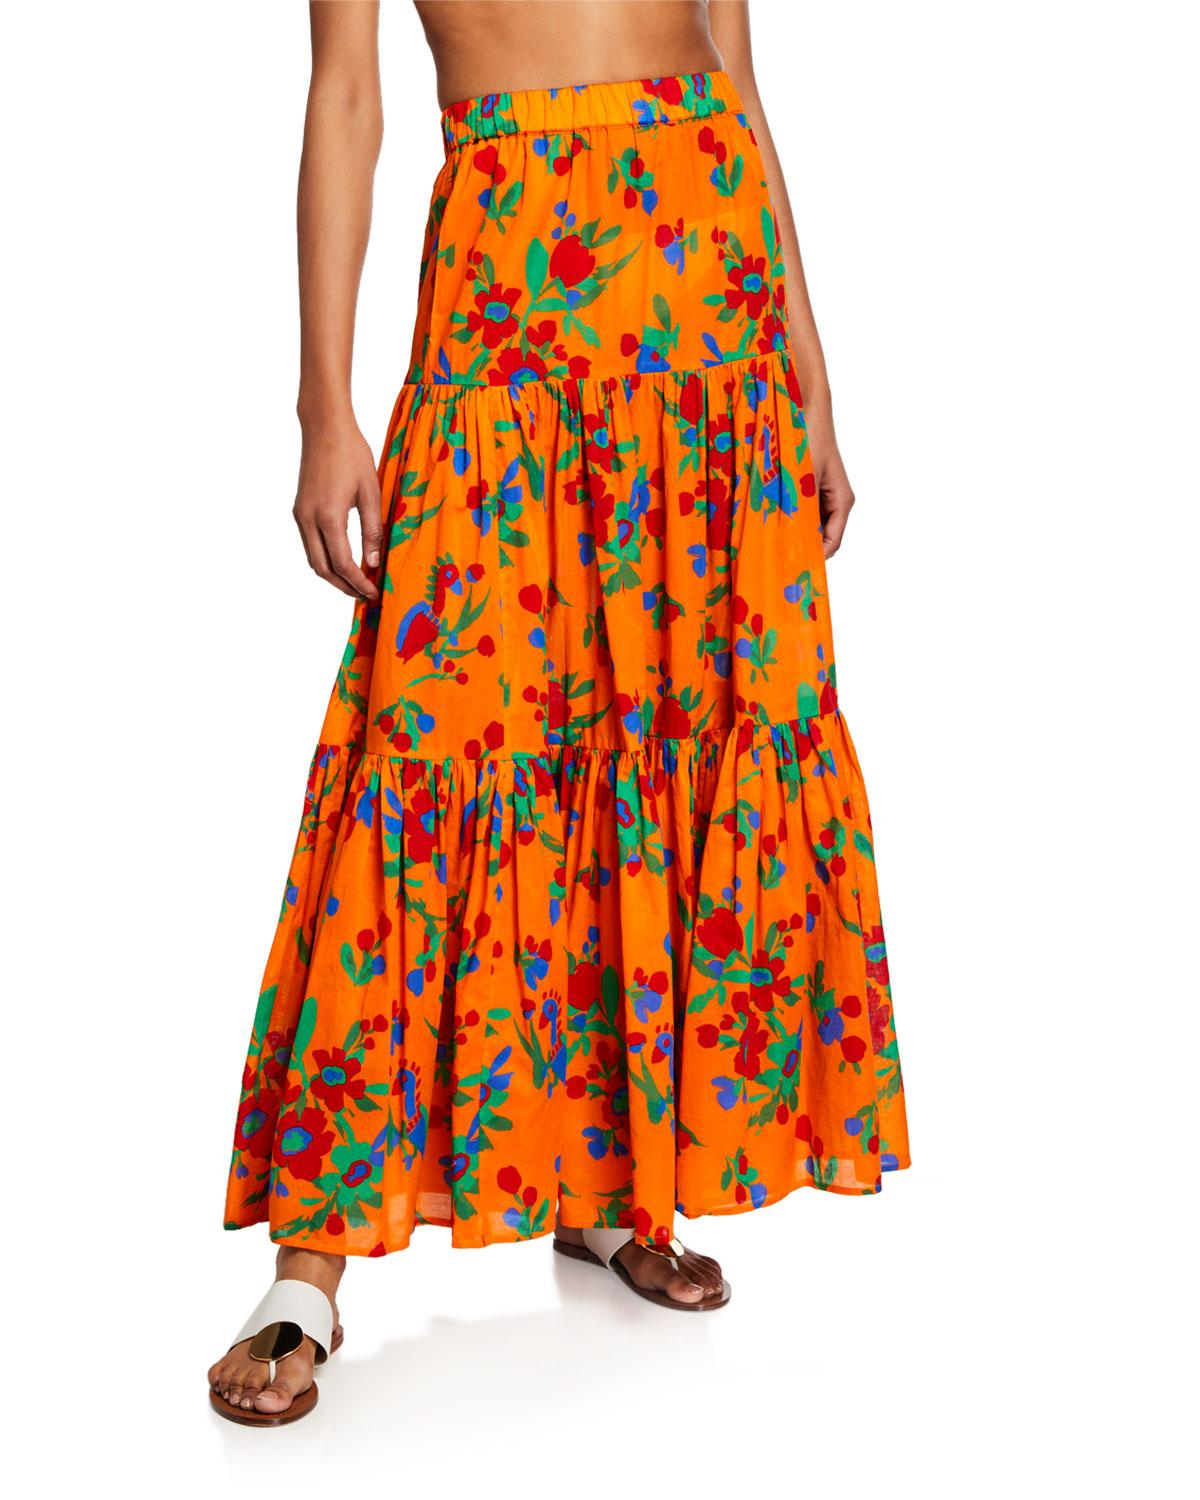 cbb8184fdc Lyst - Tory Burch Floral-print Tiered Coverup Maxi Dress in Orange